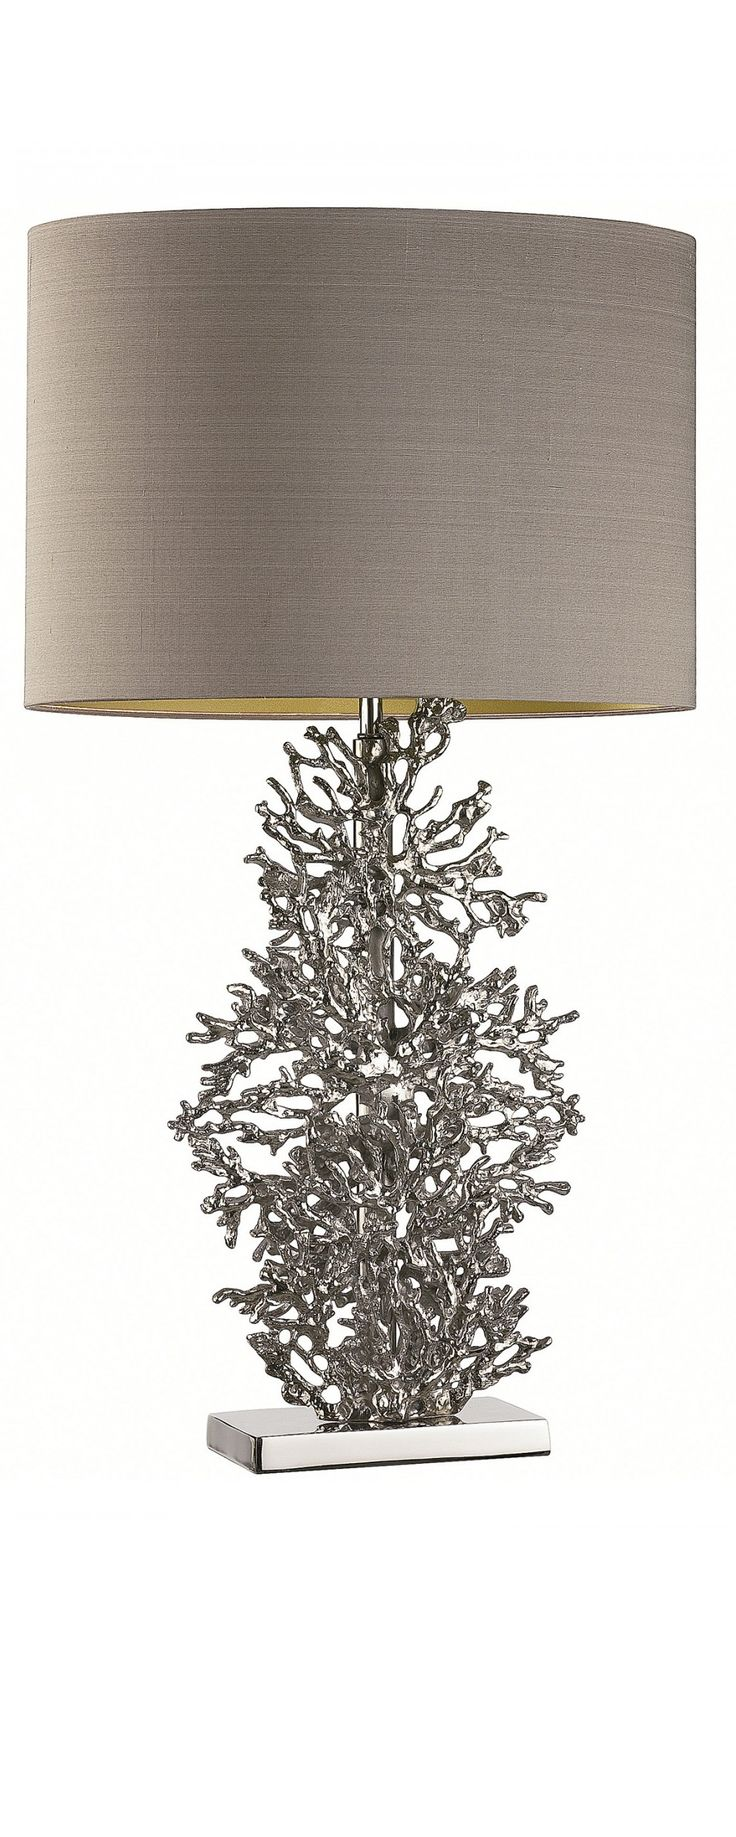 21 best silver lamp images on pinterest silver lamp silver silver cast coral lamp at instyle decor beverly hills hollywood luxury home geotapseo Image collections